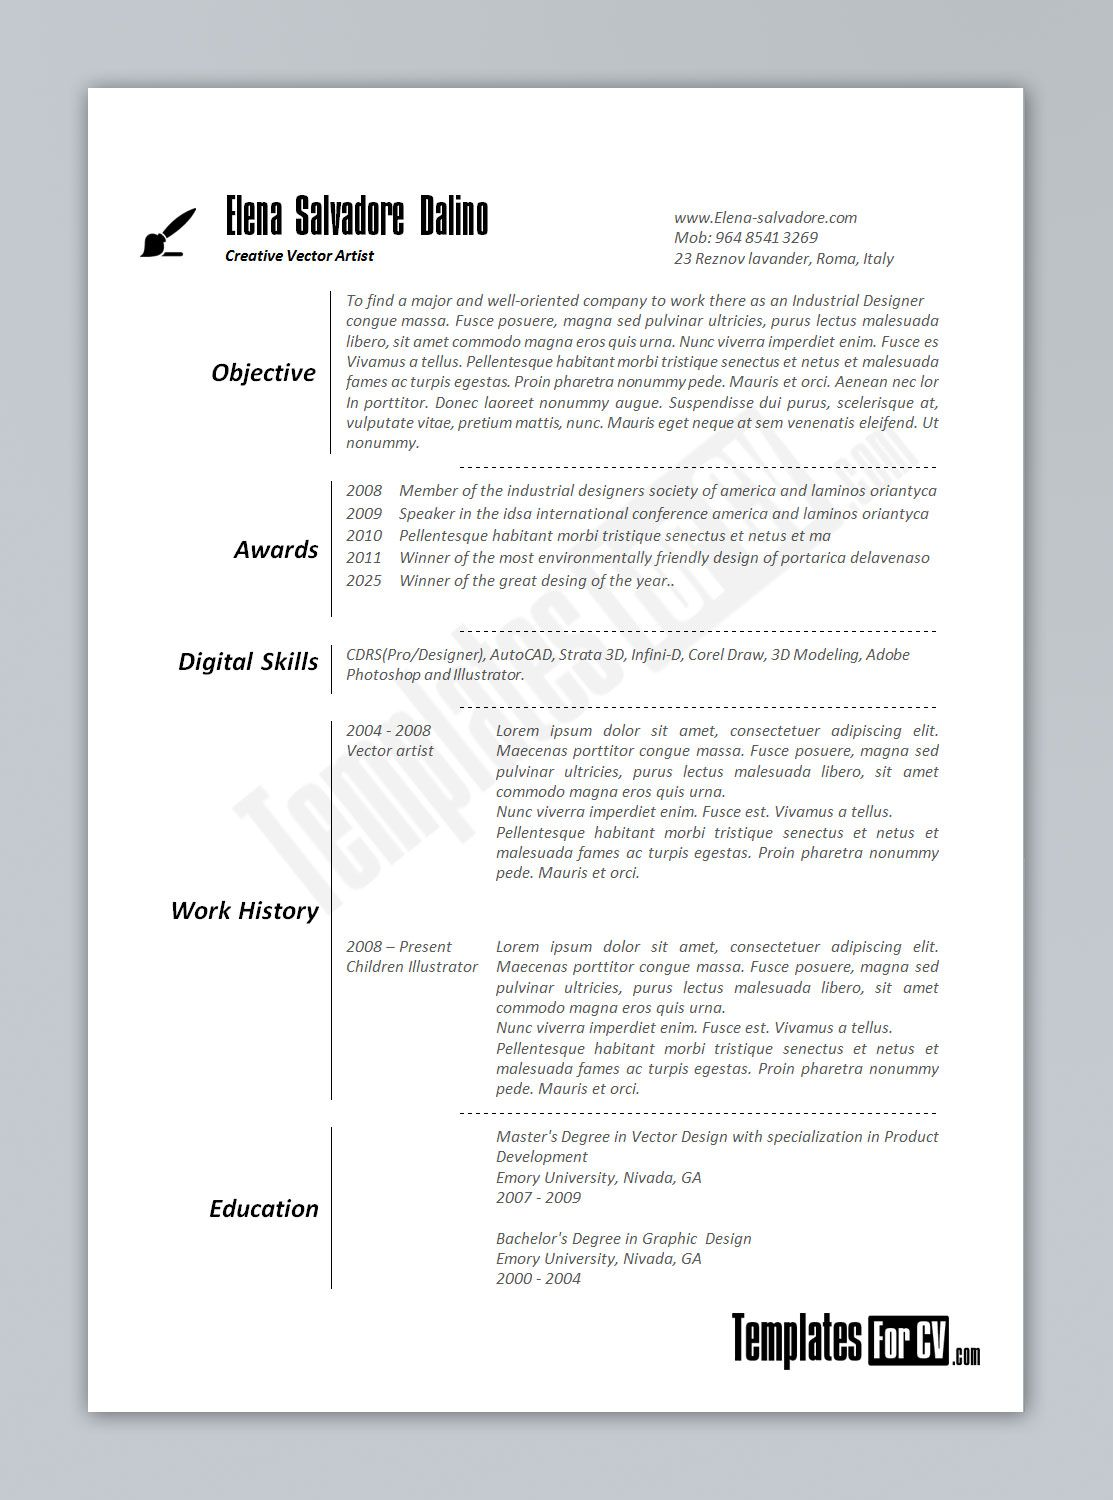 artist cv template artist cv template - How To Get Resume Template On Word